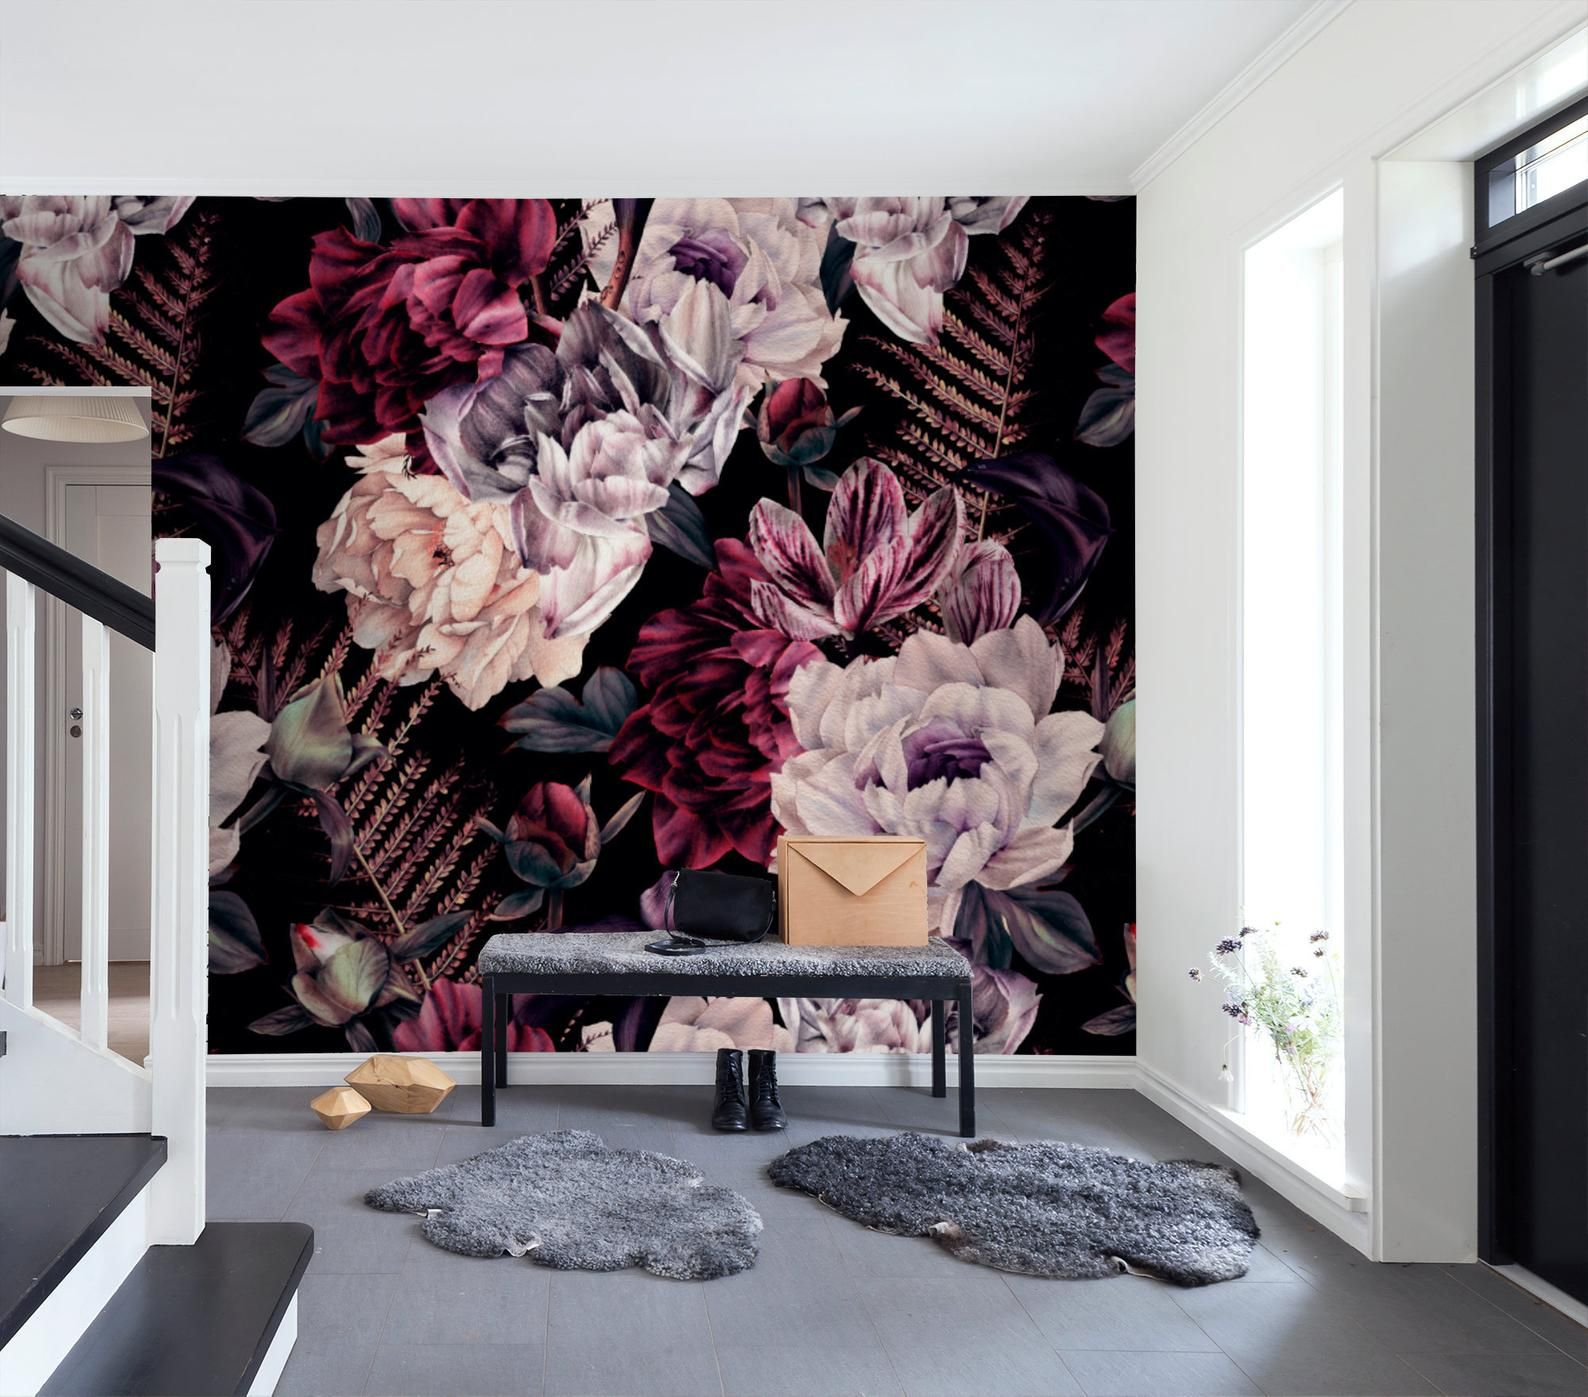 Dark Floral Wallpaper Removable Peel And Stick Self Adhesive Etsy In 2021 Floral Wallpaper Dark Floral Wall Murals